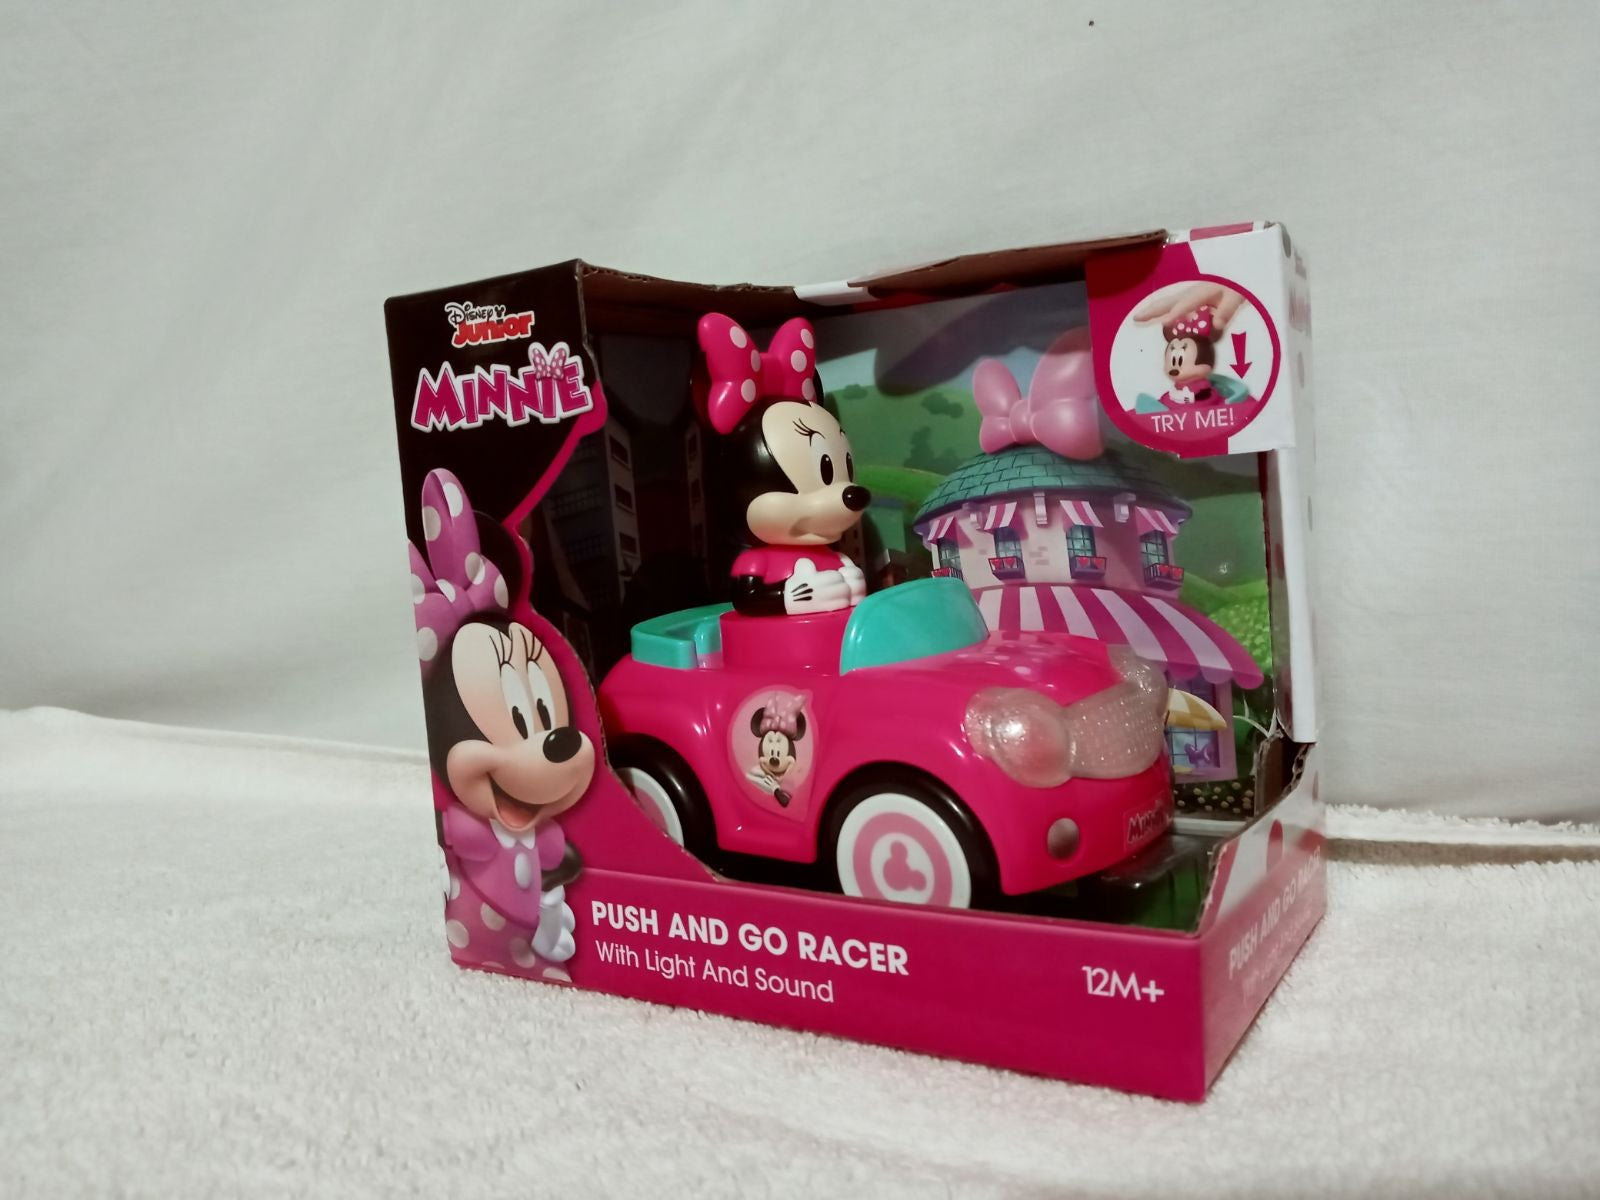 Disney Push and Go Racer